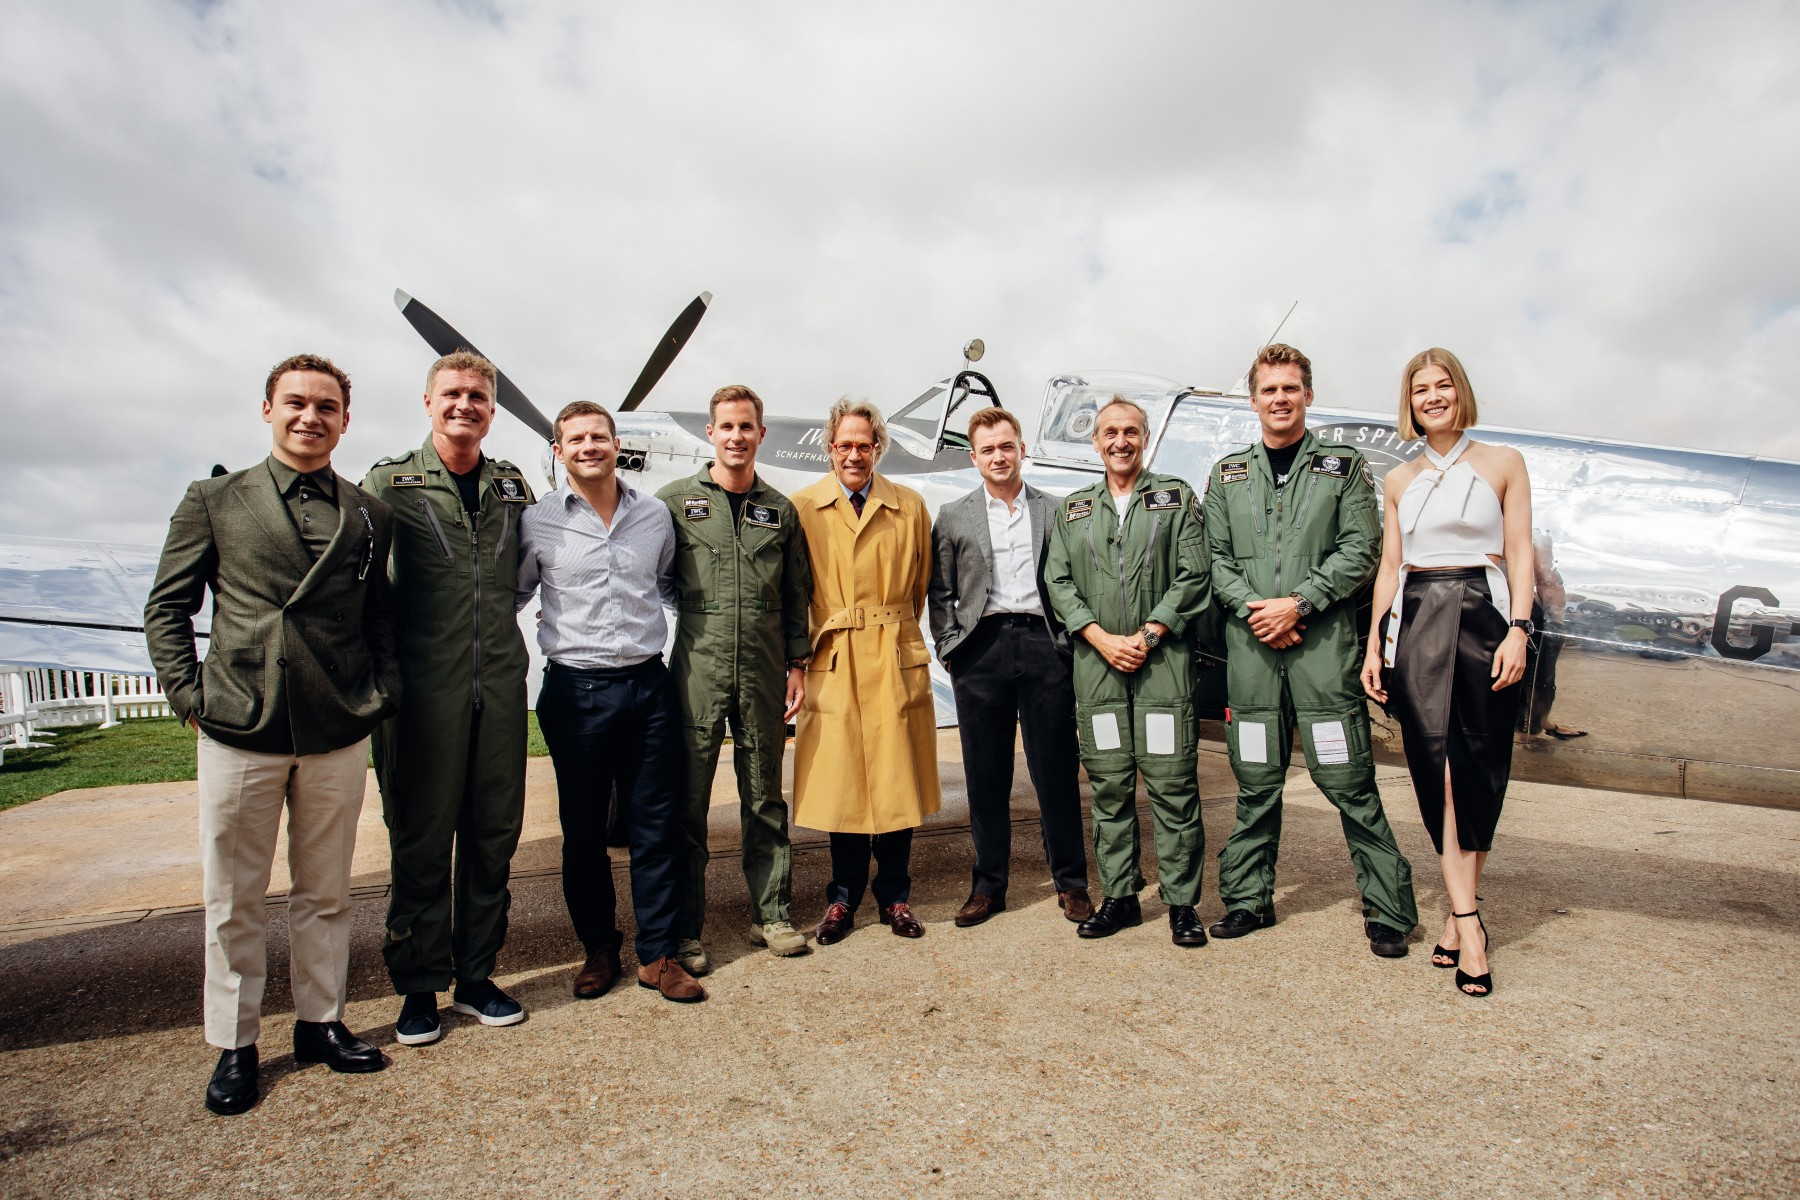 IWC_Goodwood_Departure_2019